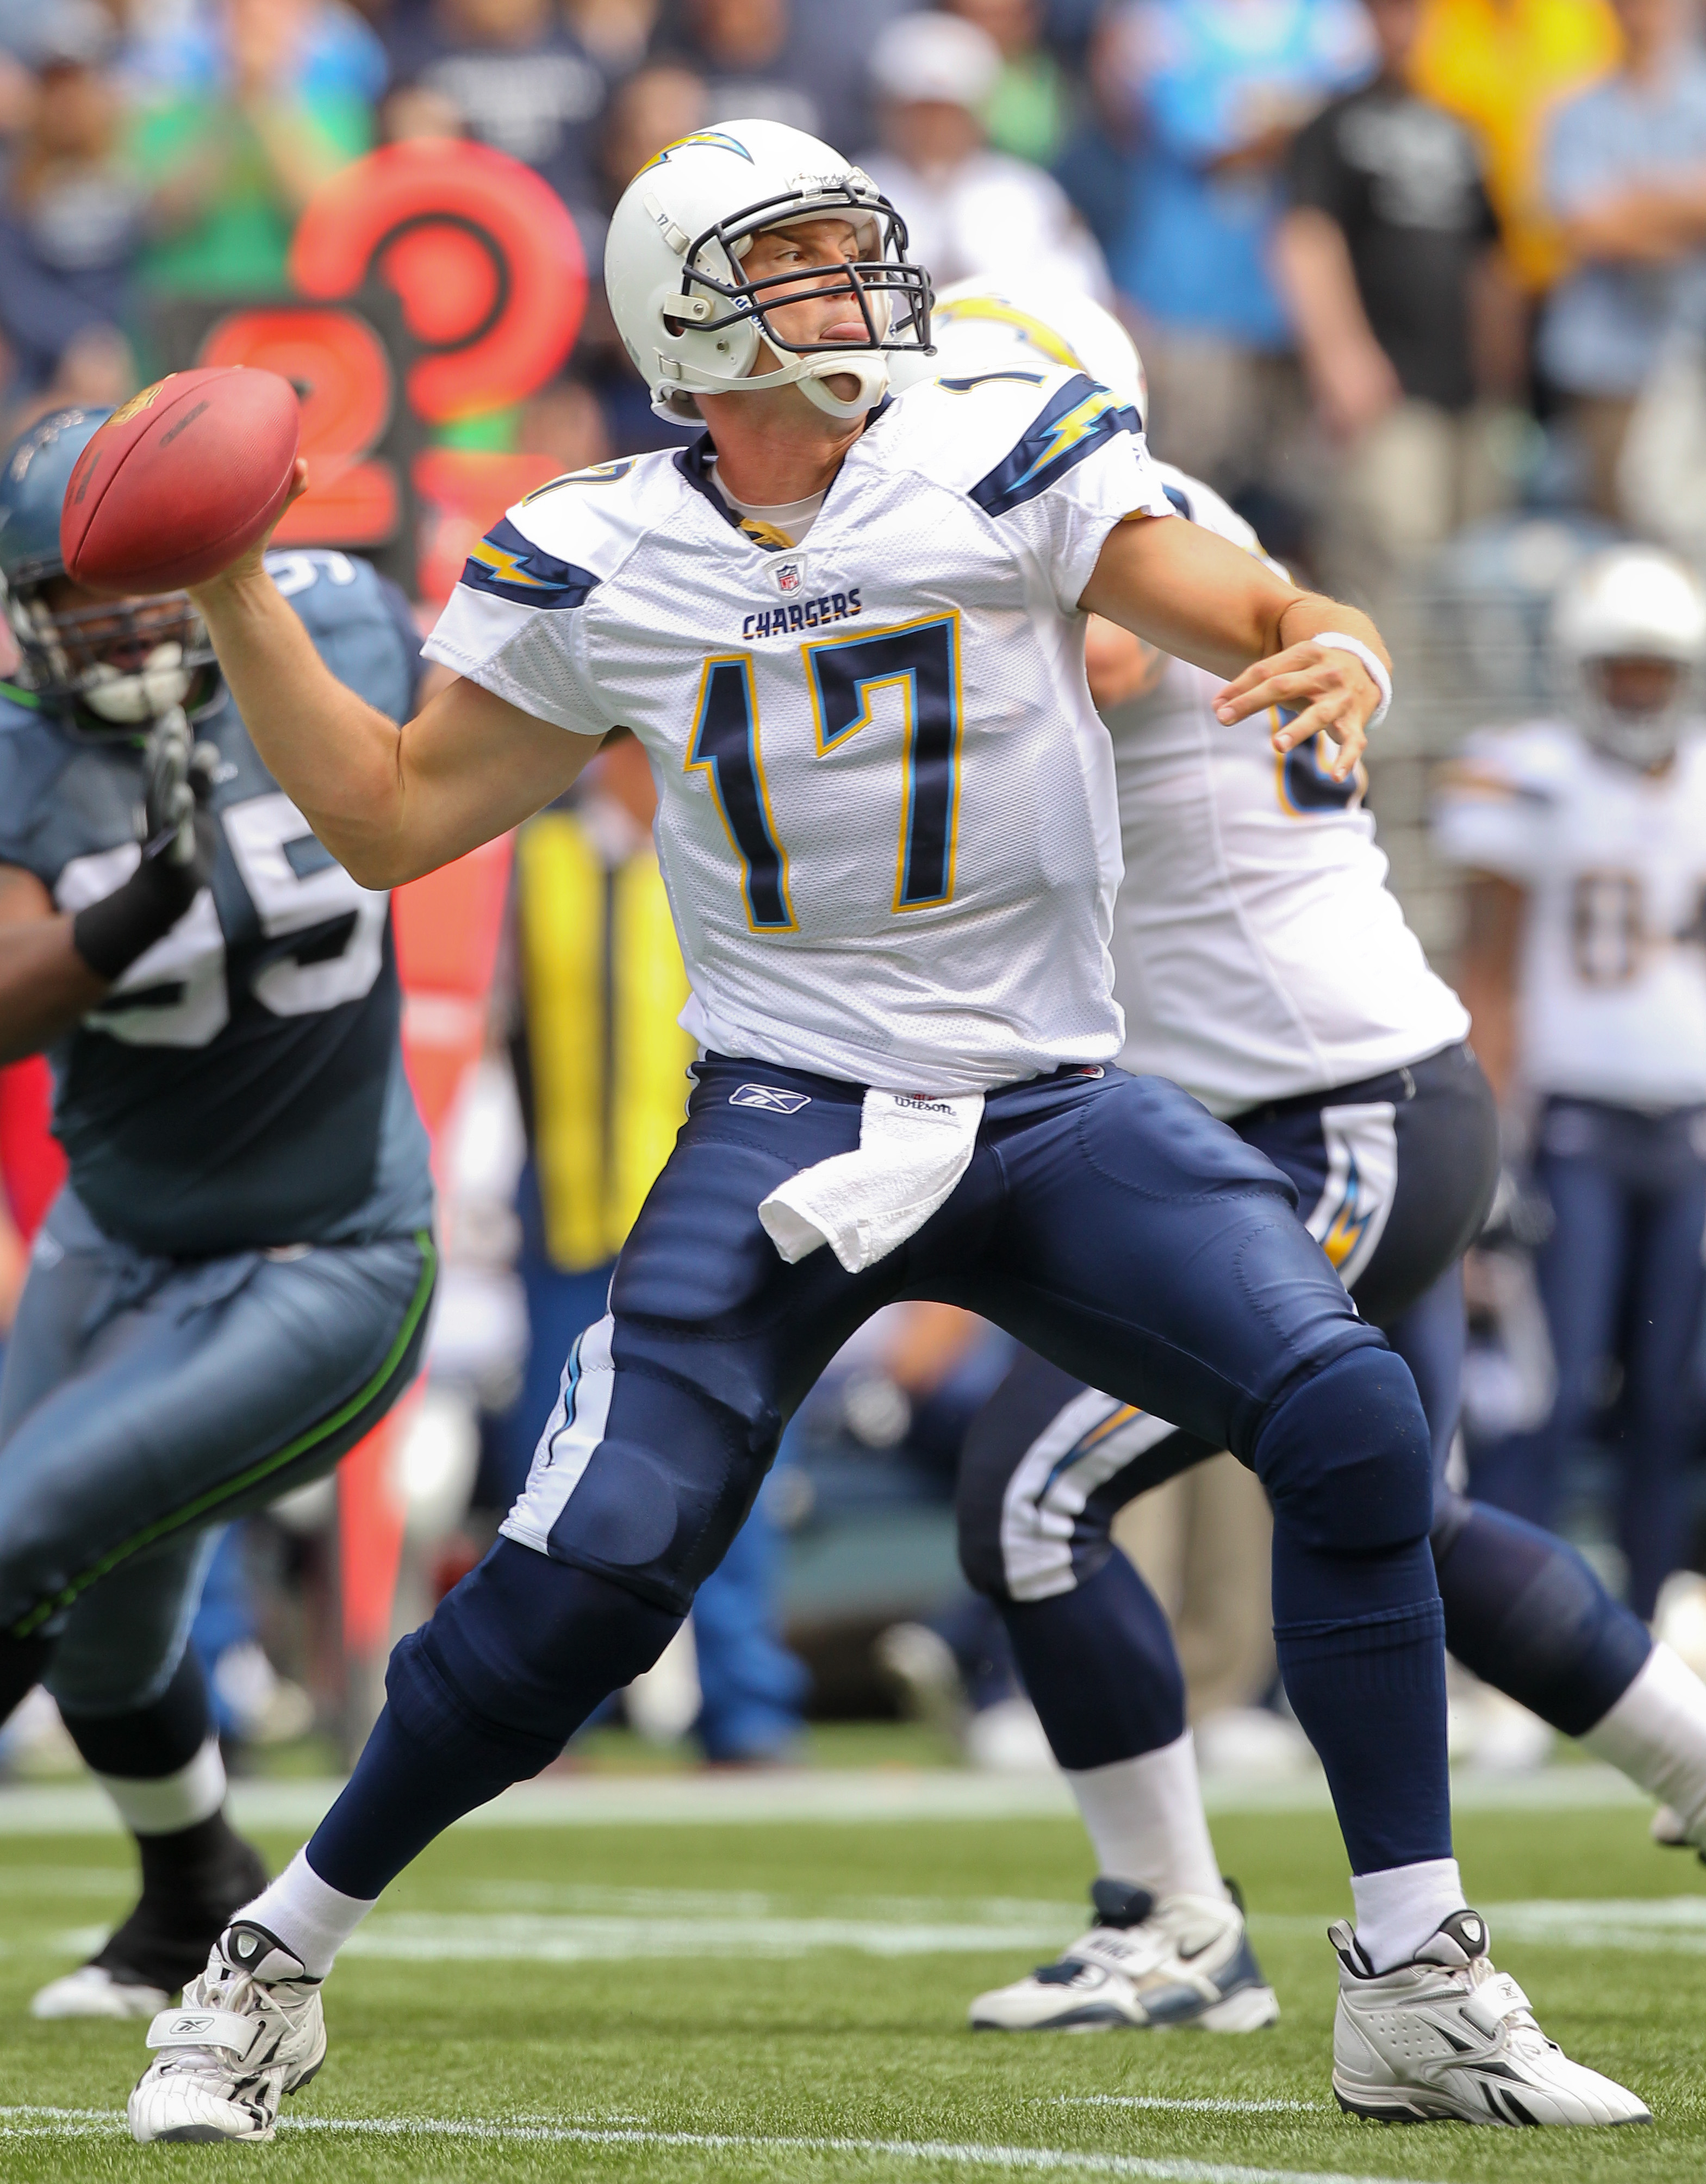 SEATTLE - SEPTEMBER 26:  Quarterback Philip Rivers #17 of the San Diego Chargers passes against the Seattle Seahawks at Qwest Field on September 26, 2010 in Seattle, Washington. (Photo by Otto Greule Jr/Getty Images)